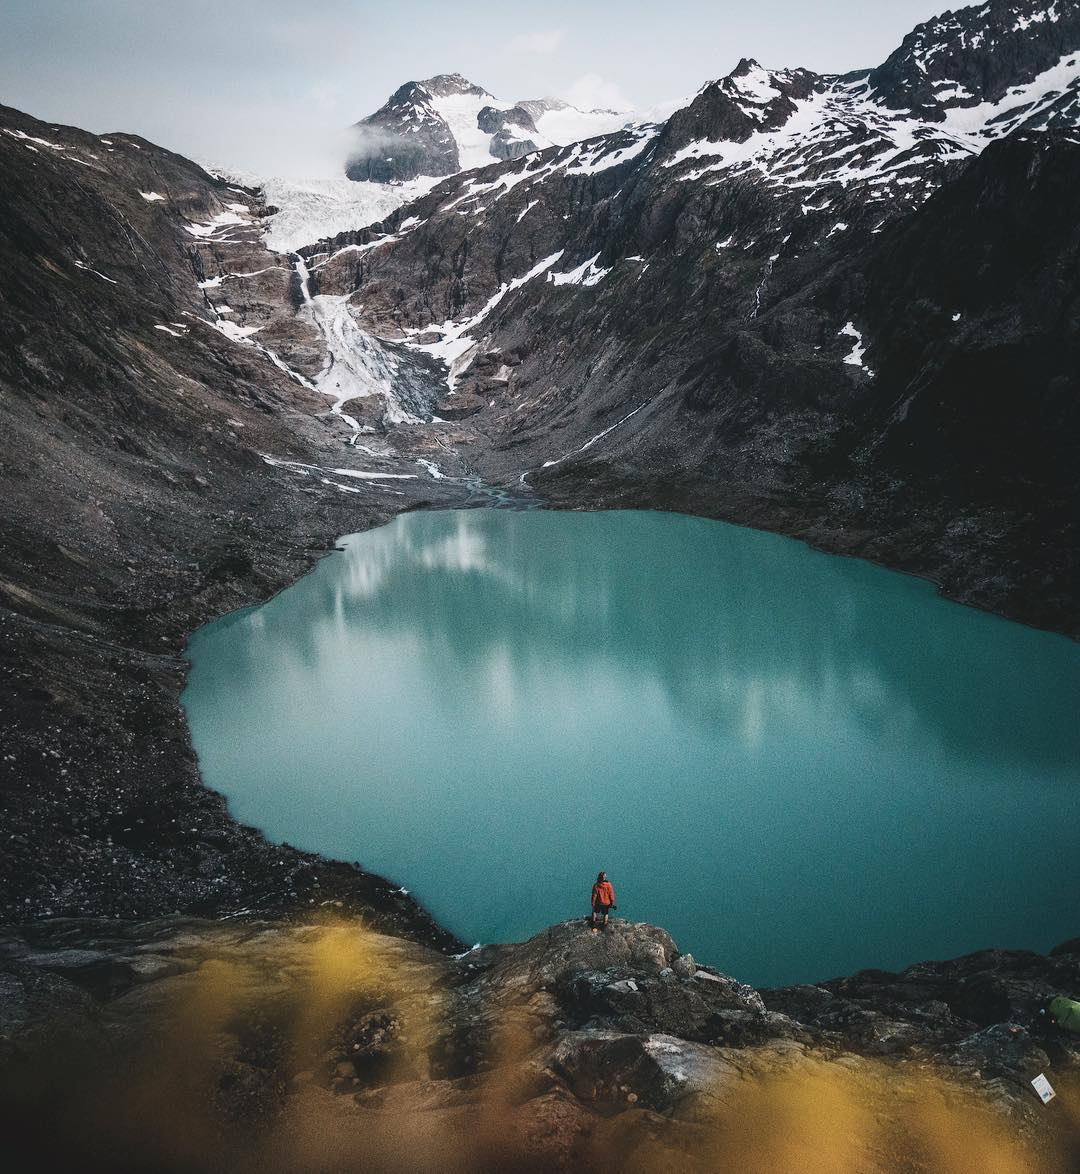 18-Year-Old's Landscape Photography Captures Epic Mountain